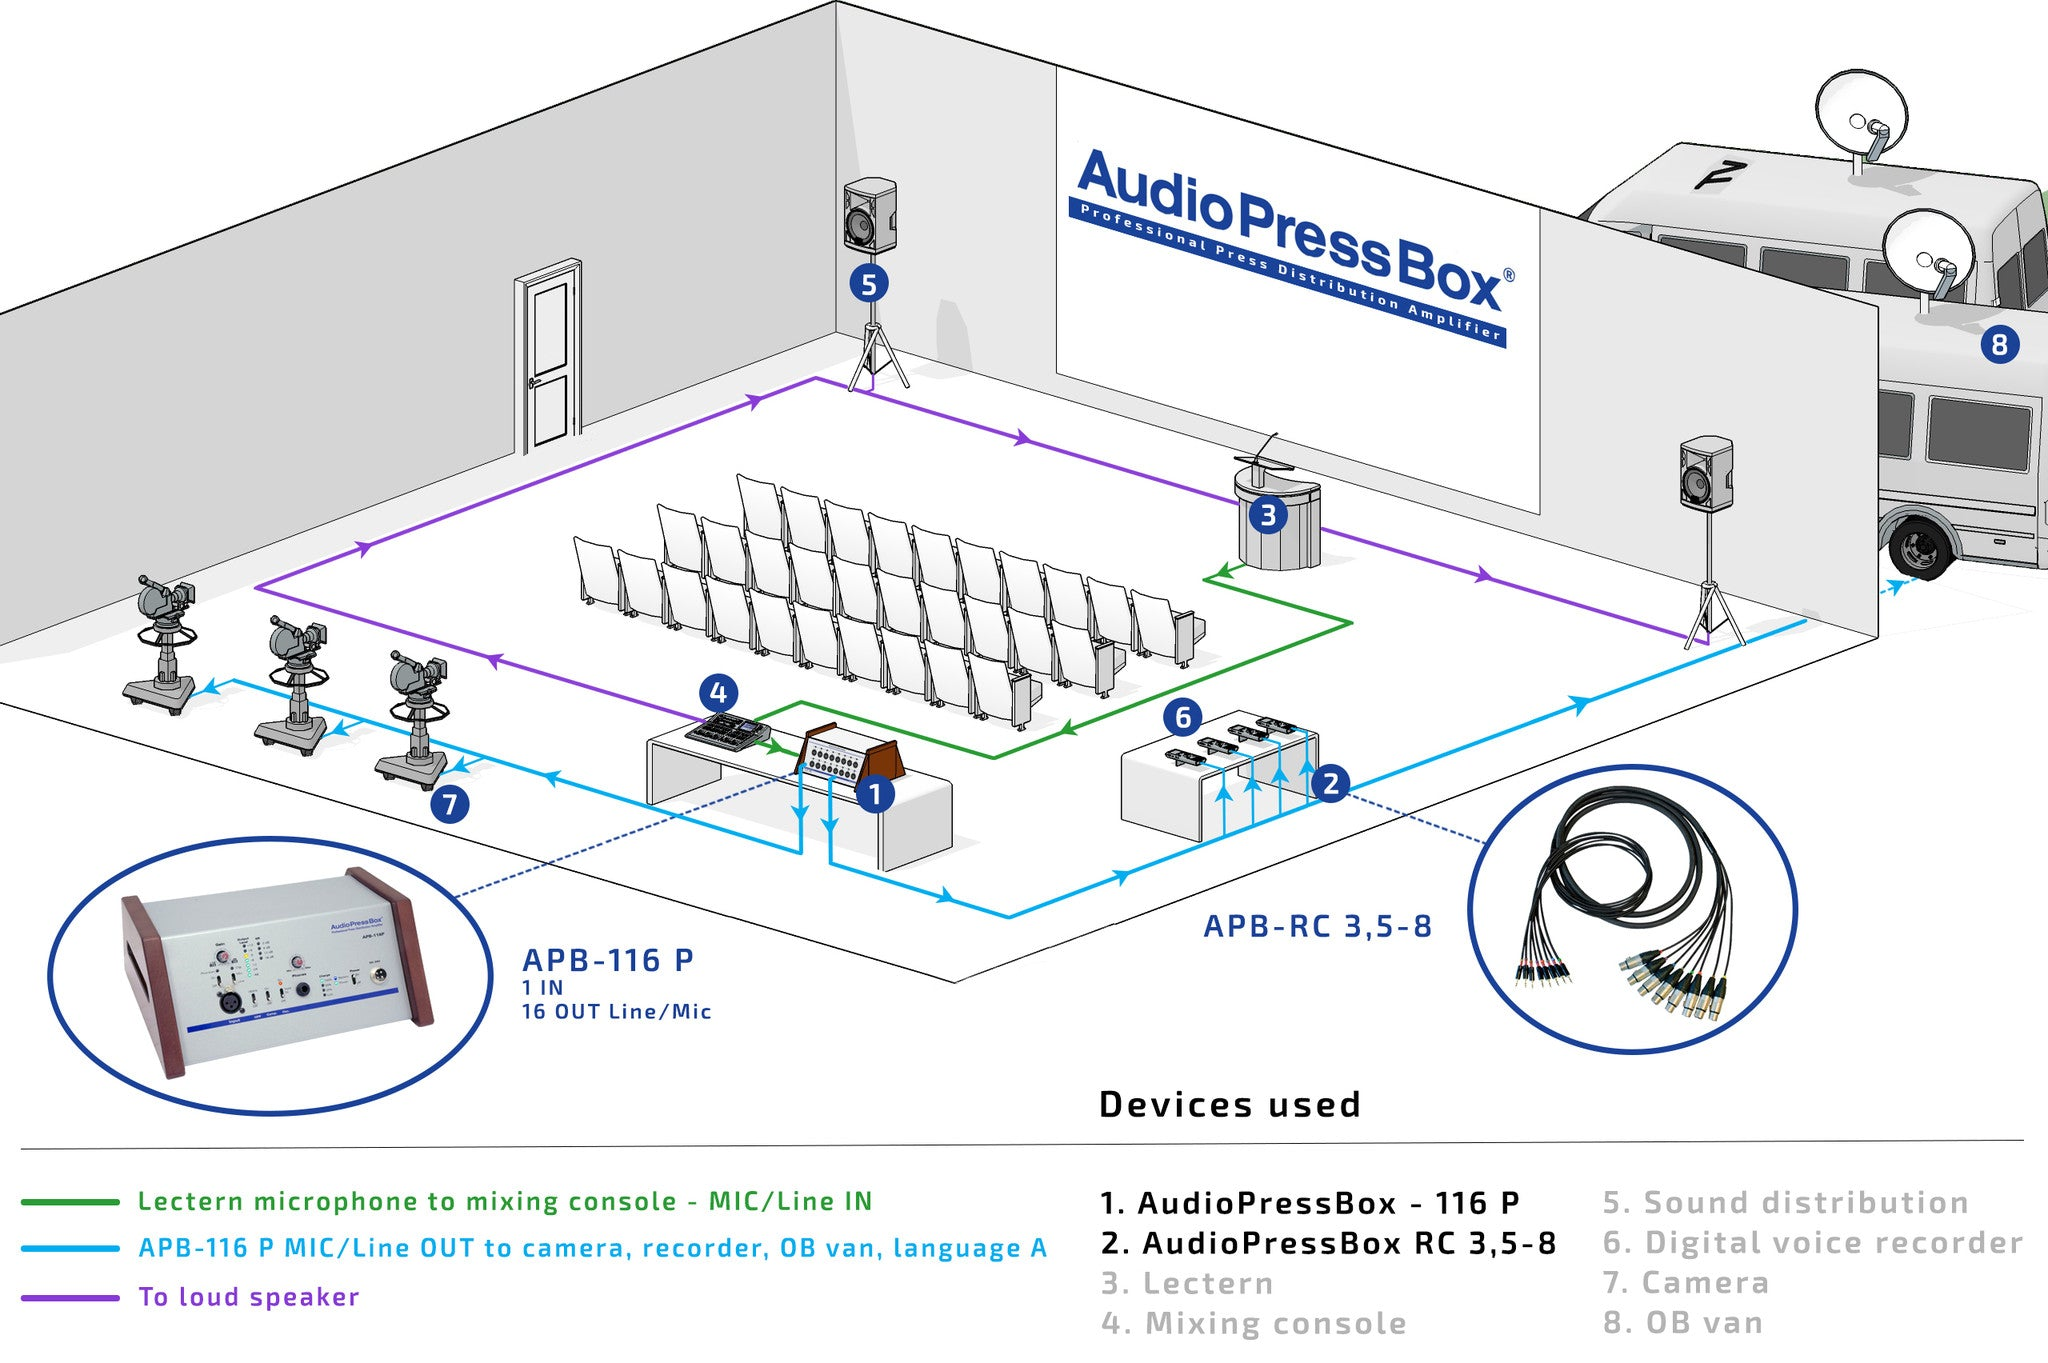 AudioPressBox, Mult Box PressBox, Mult Box, Press Patch Box, Pressesplitter, APB-116 P.